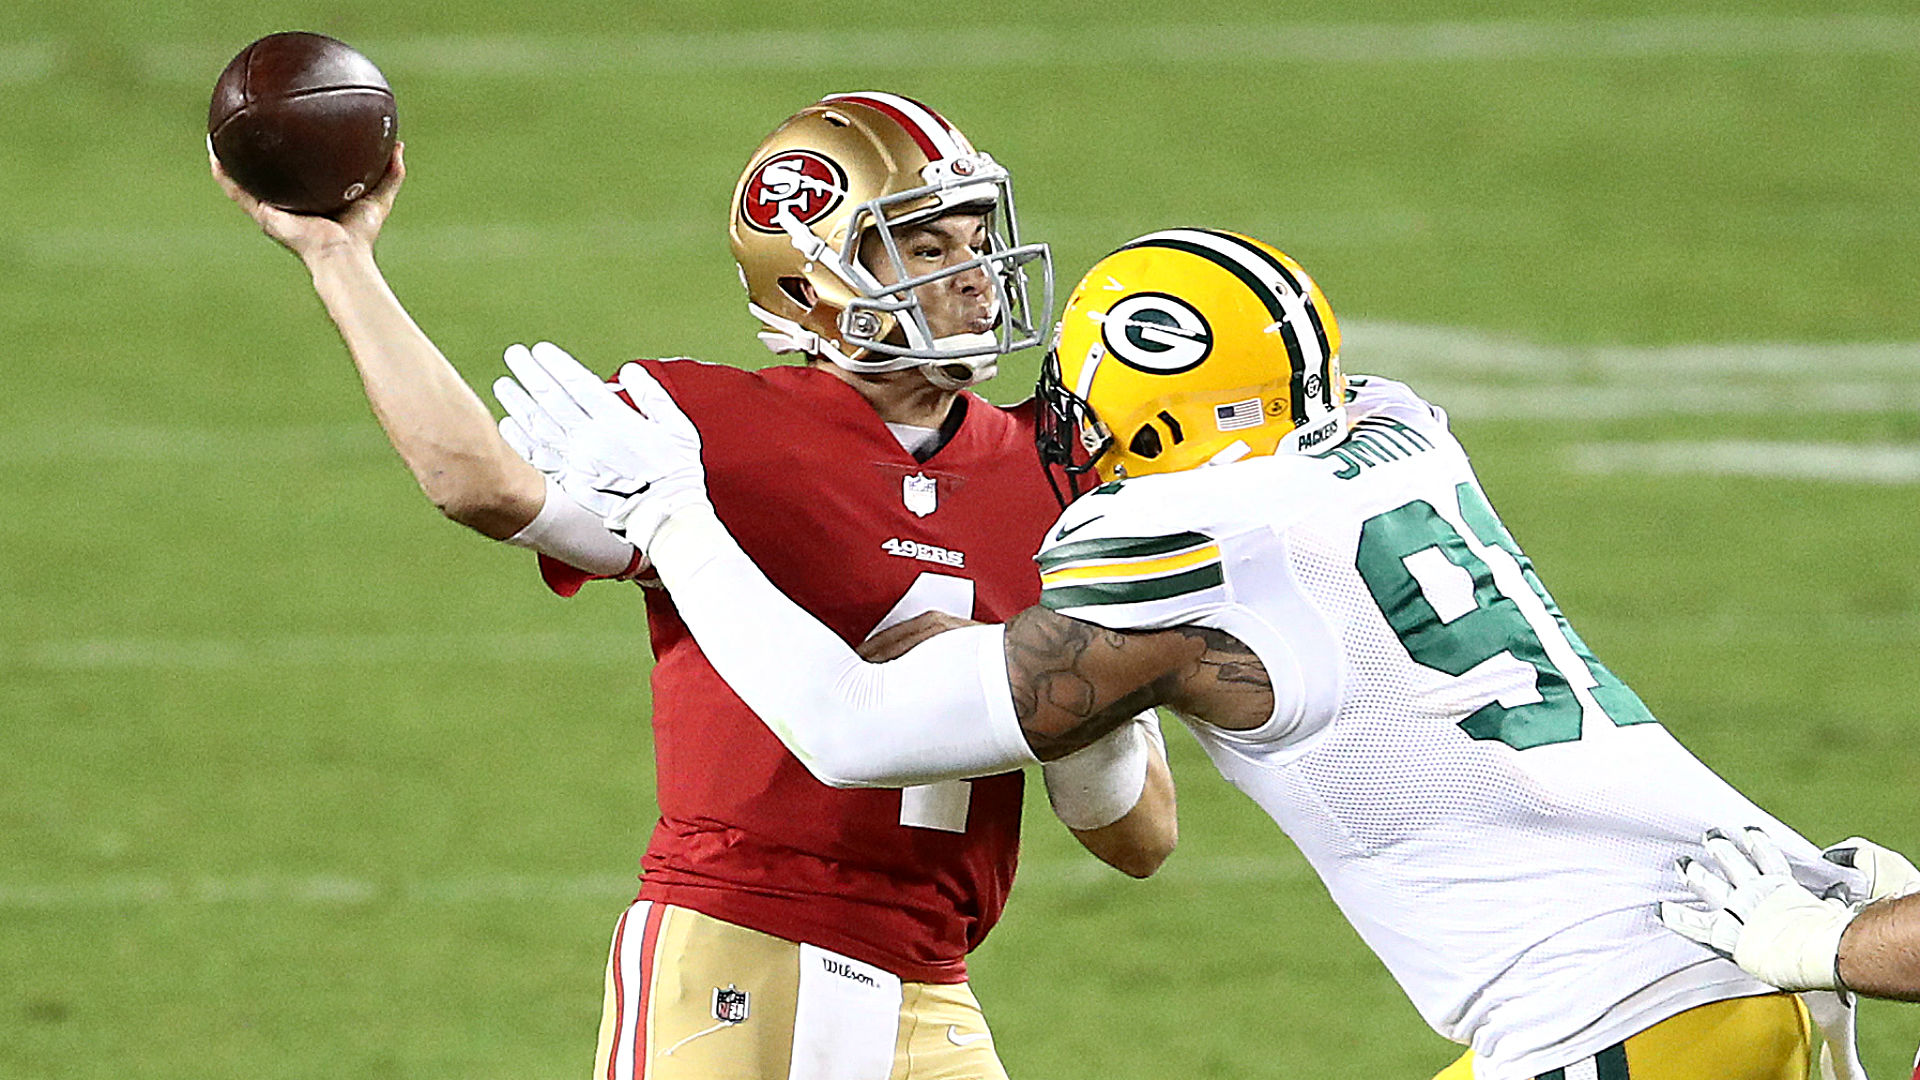 Packers-49ers mess shows COVID-19 becoming greater threat to NFL schedule